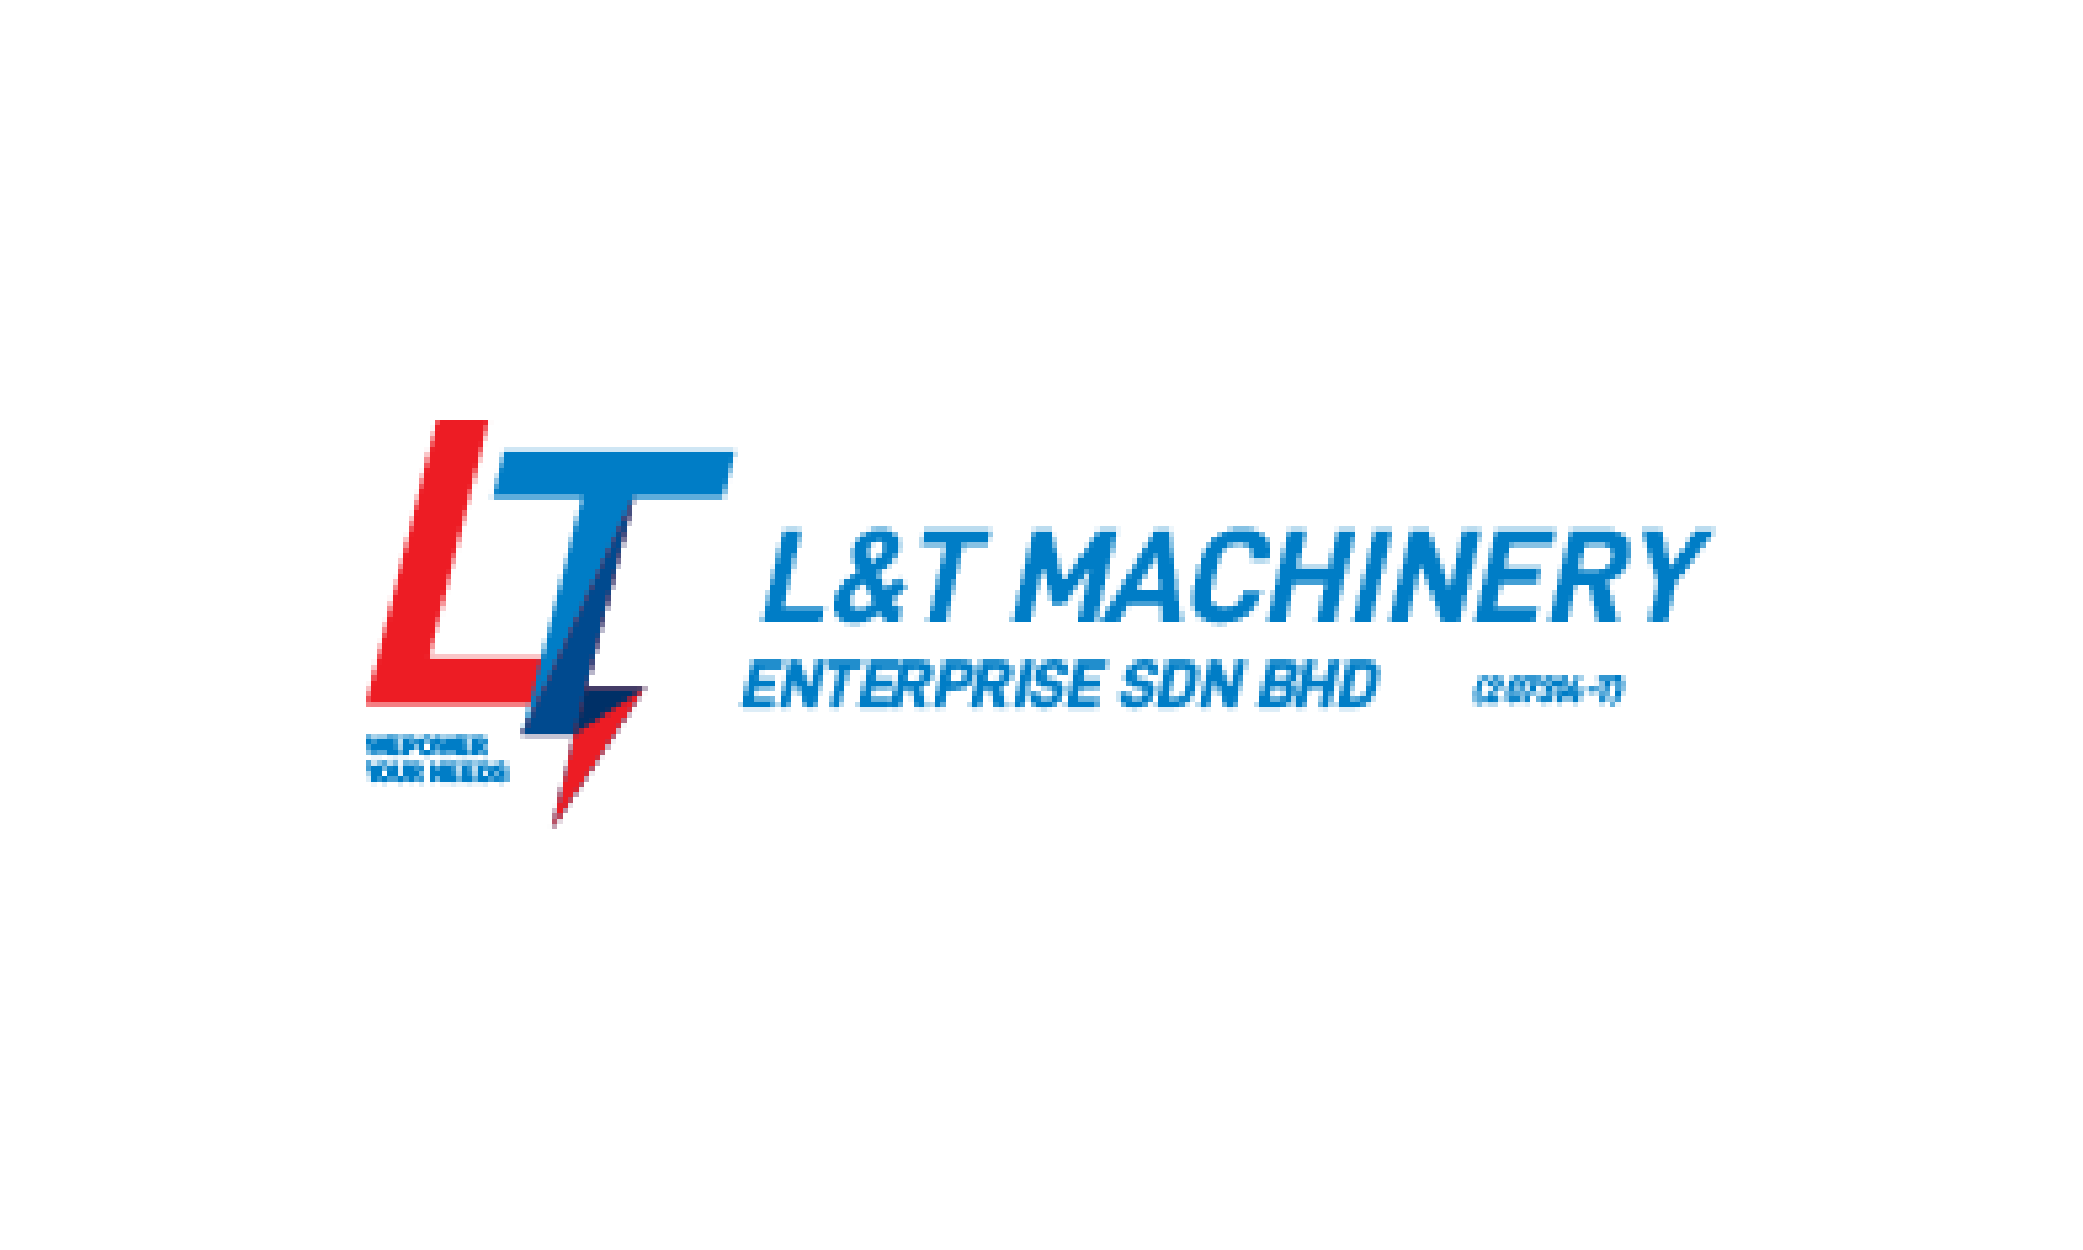 L & T Machinery